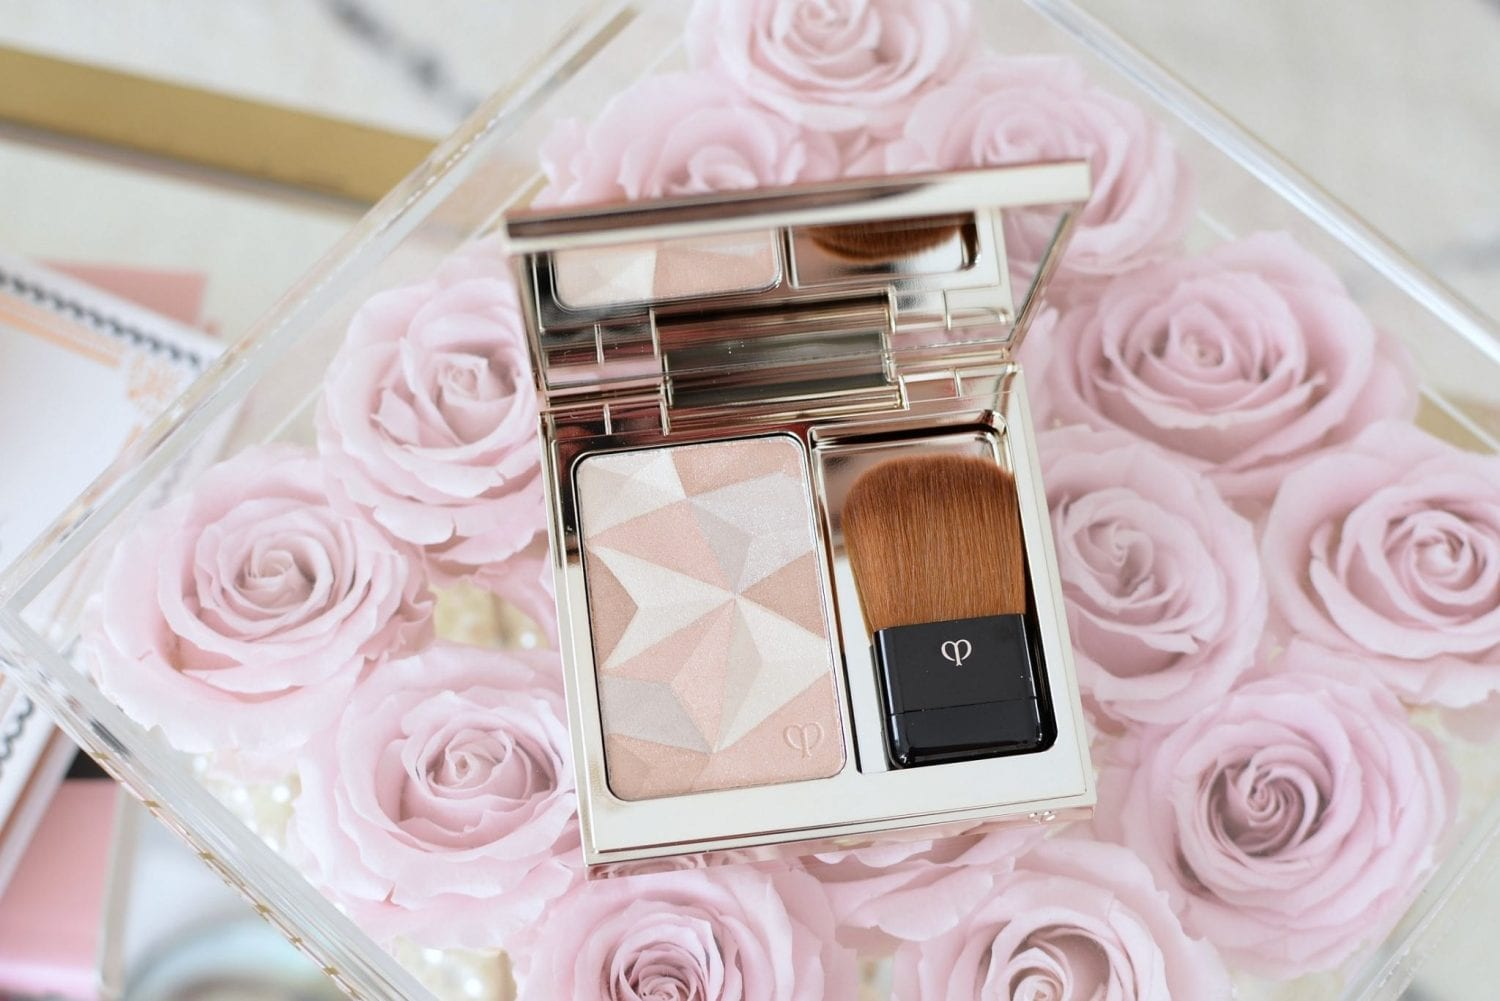 Soft Romantic Pink Makeup Look featuring Cle de Peau (16)